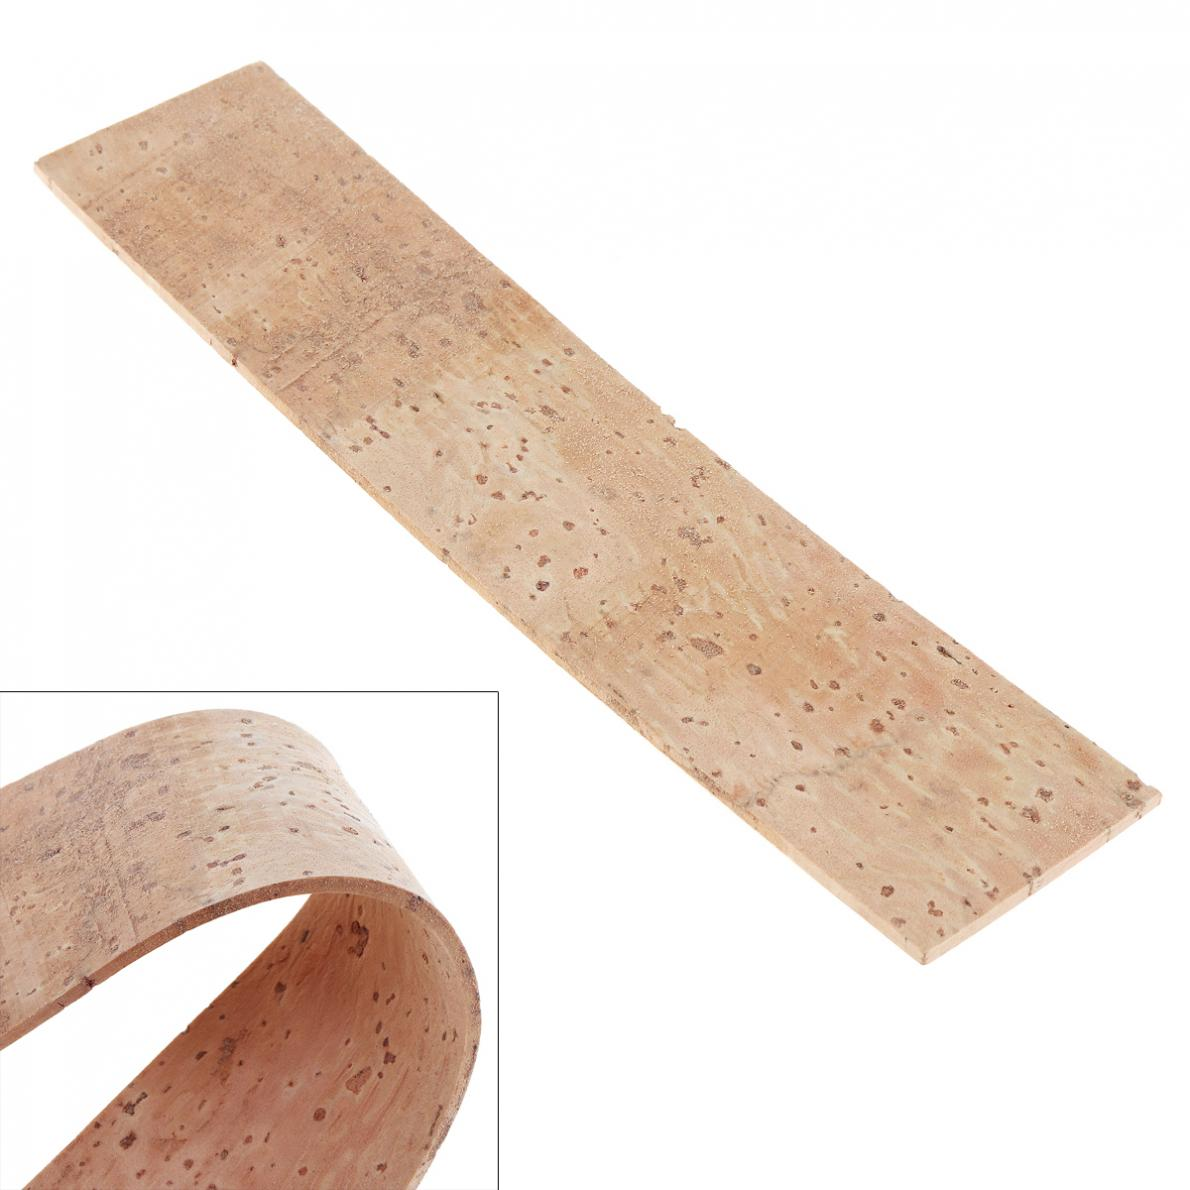 135 X 30mm Natural Cork Bassoon Mouth Neck Tube Woodwind Instrument Repair Accessories Hot